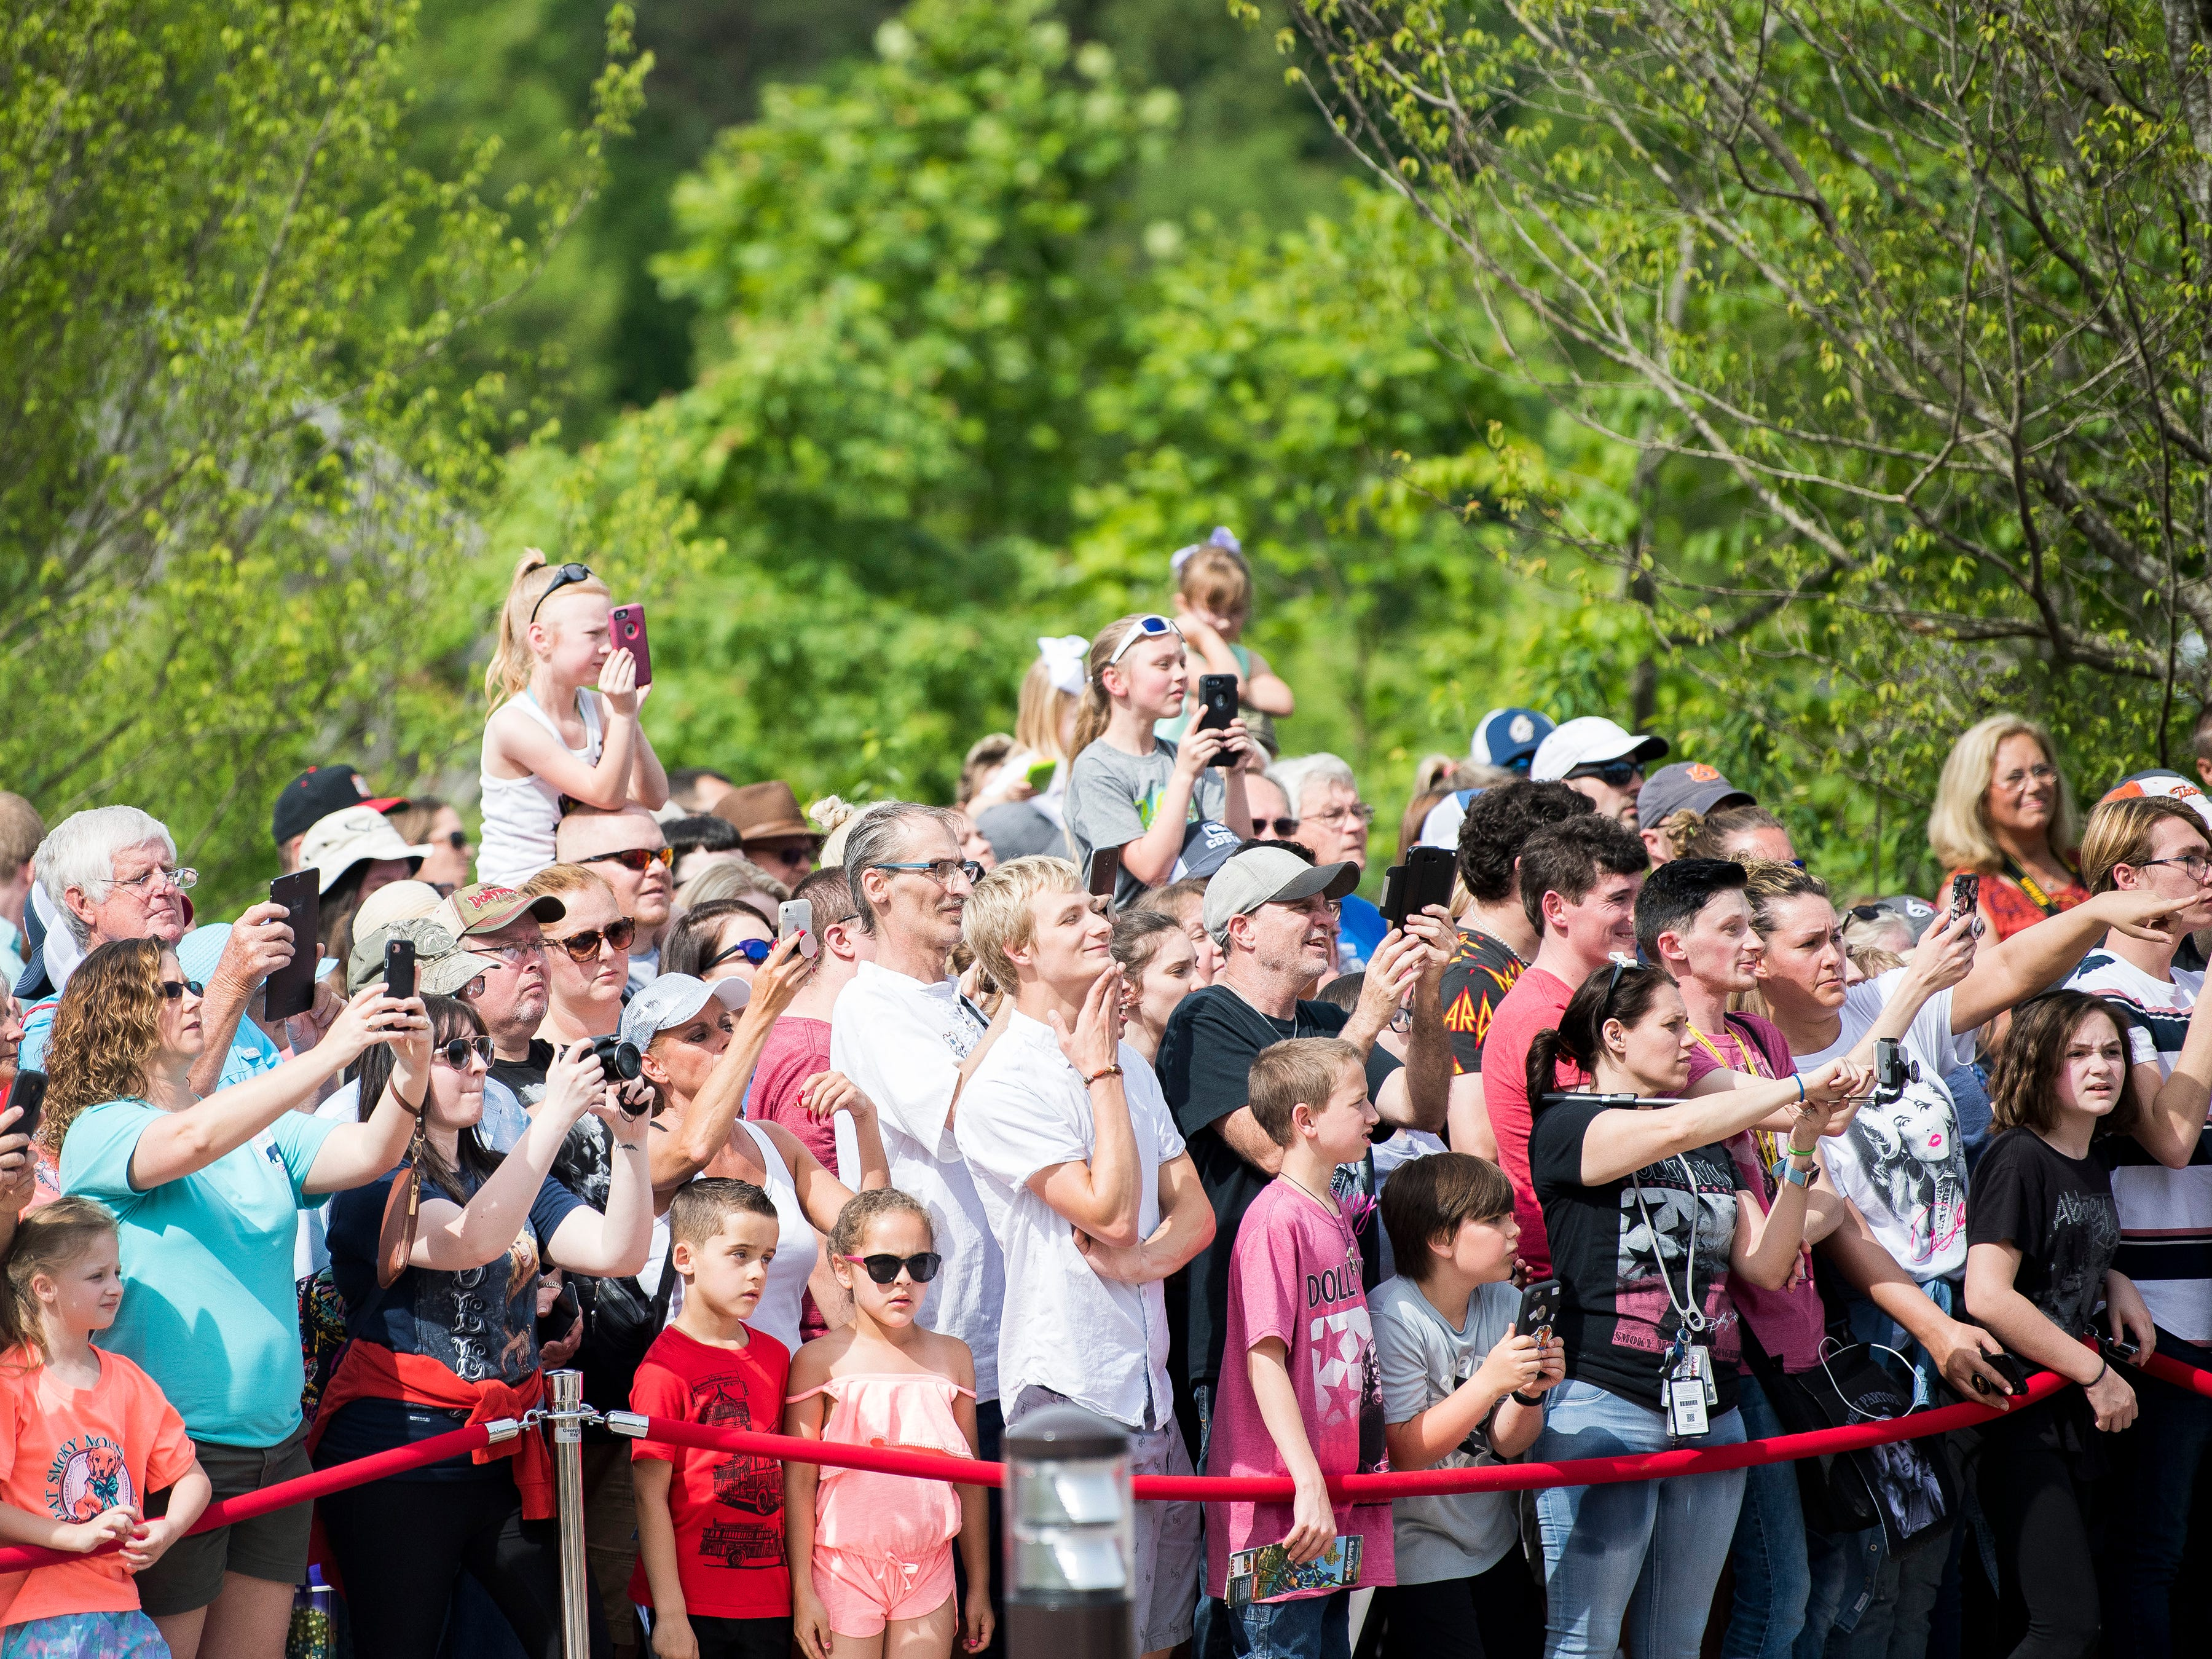 Guests take photos and watch as Dolly Parton arrives to the grand opening of Dollywood's new Wildwood Grove expansion on Friday, May 10, 2019.